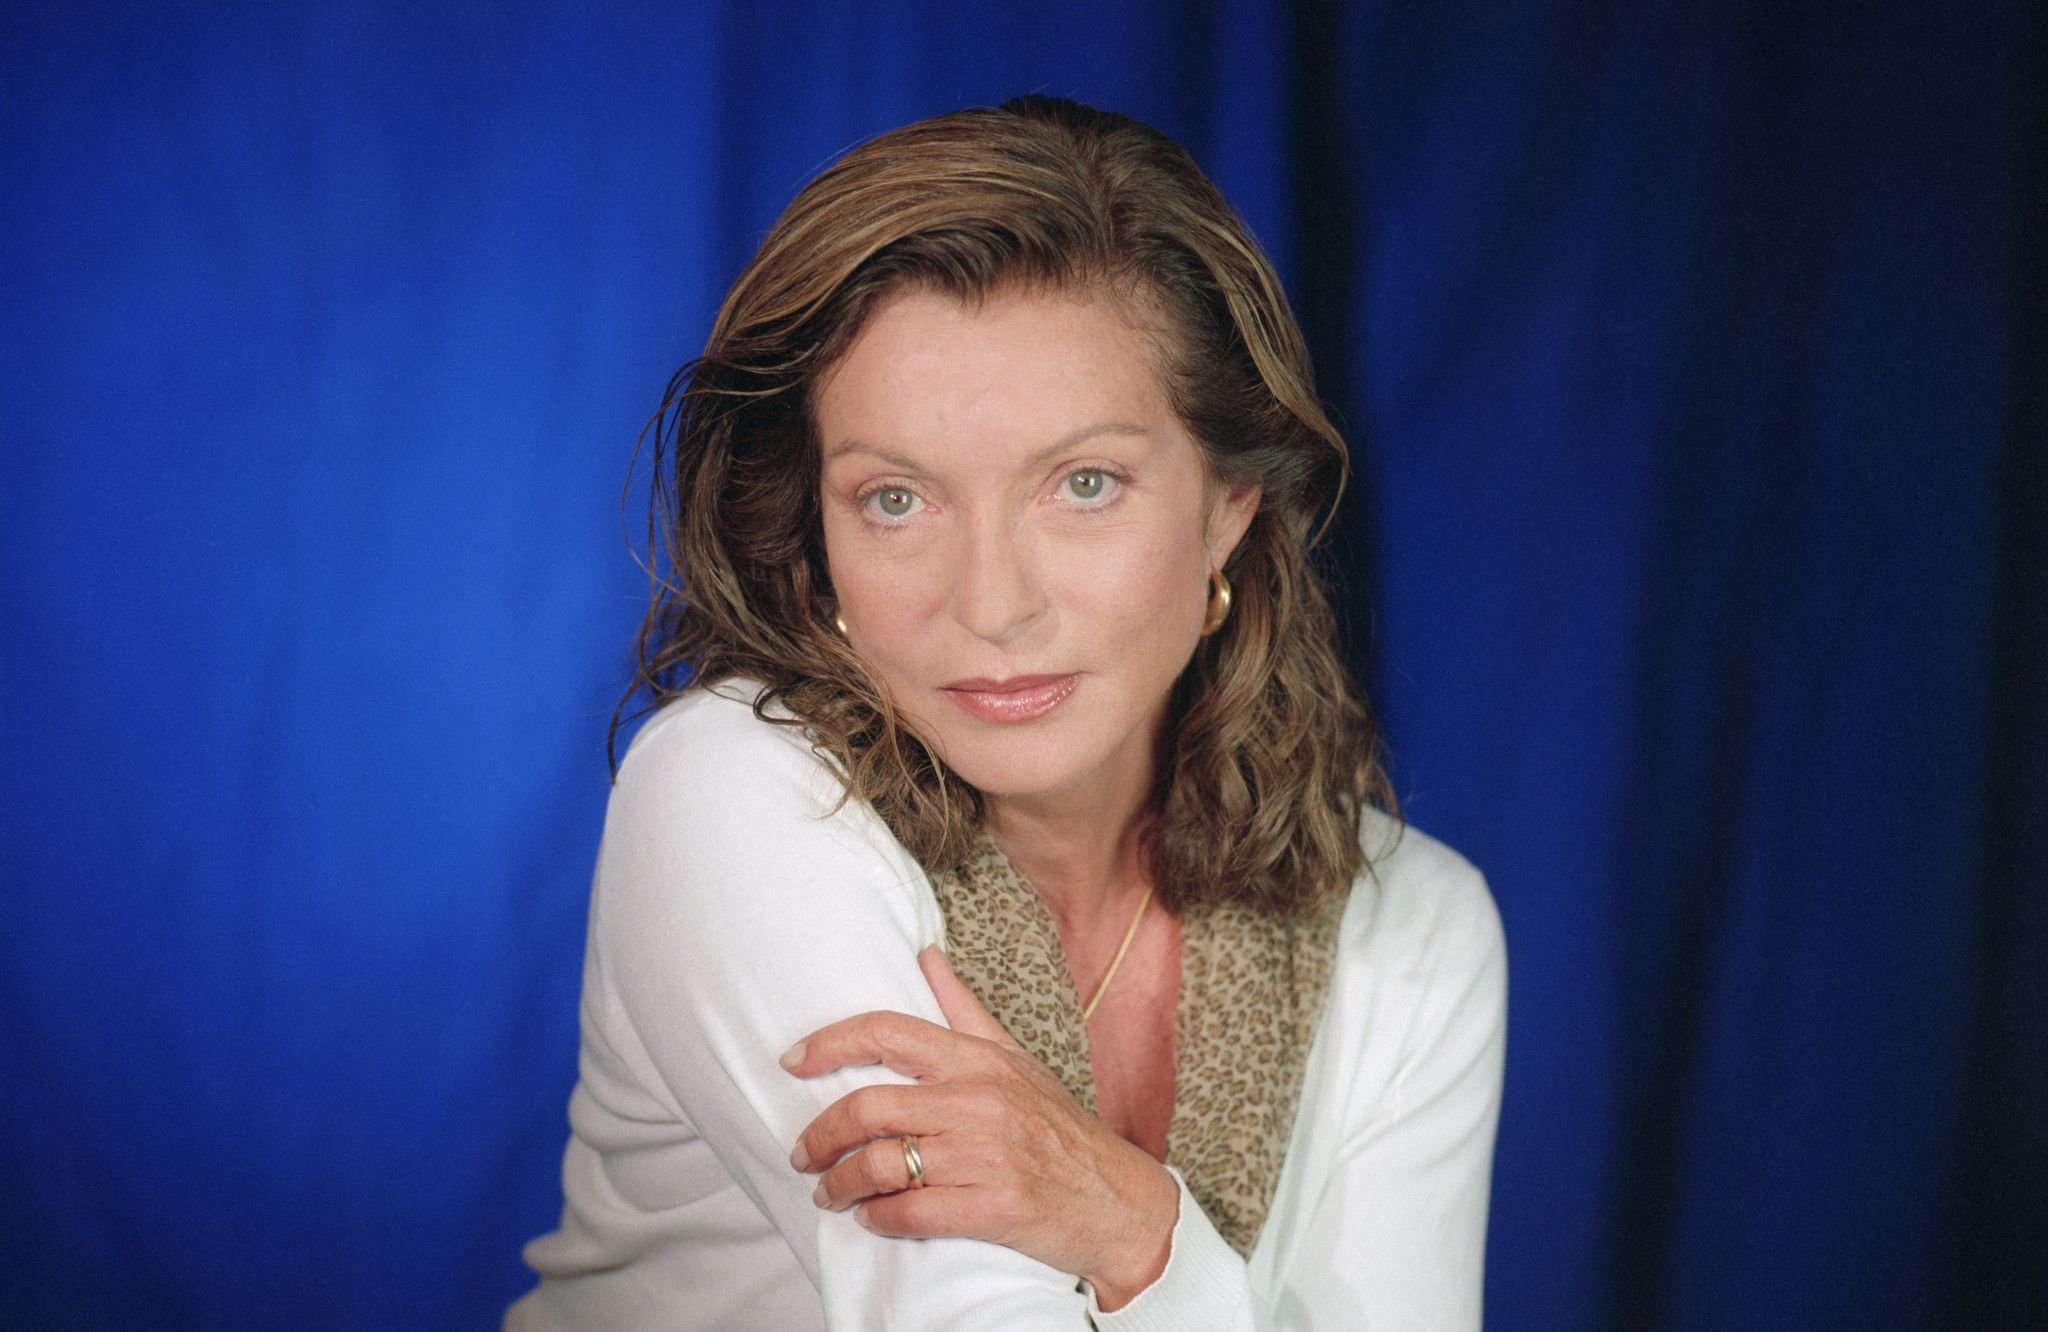 Marie-France Pisier en 1999 au festival du film américain de Deauville. l Photo : Getty Images